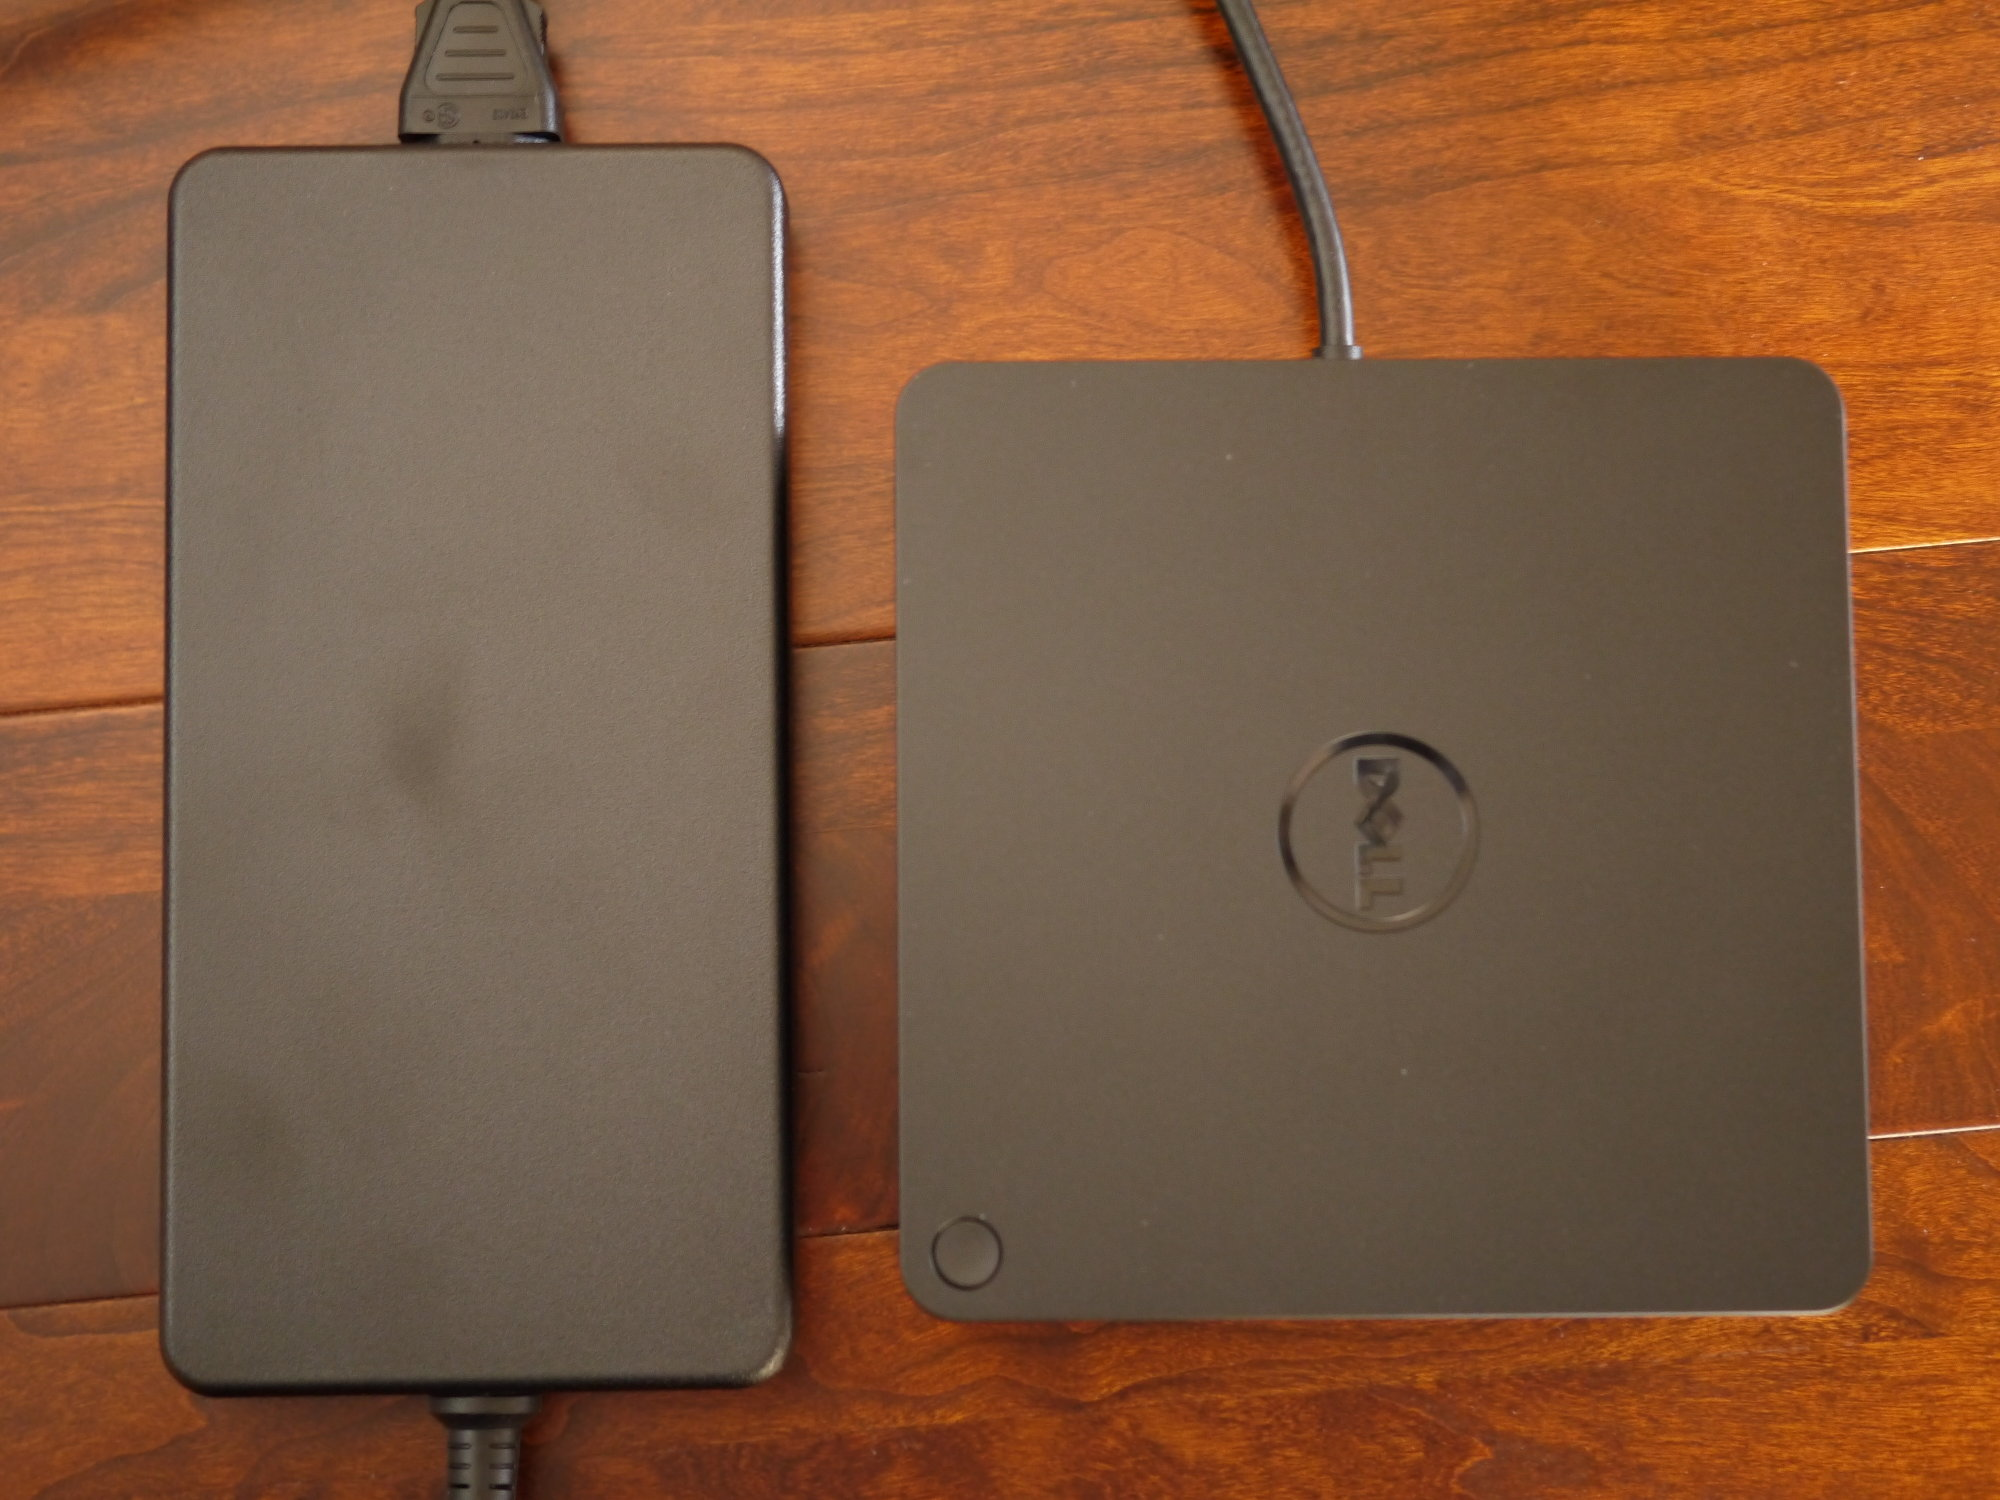 The 240W power brick and the TB15 side by side